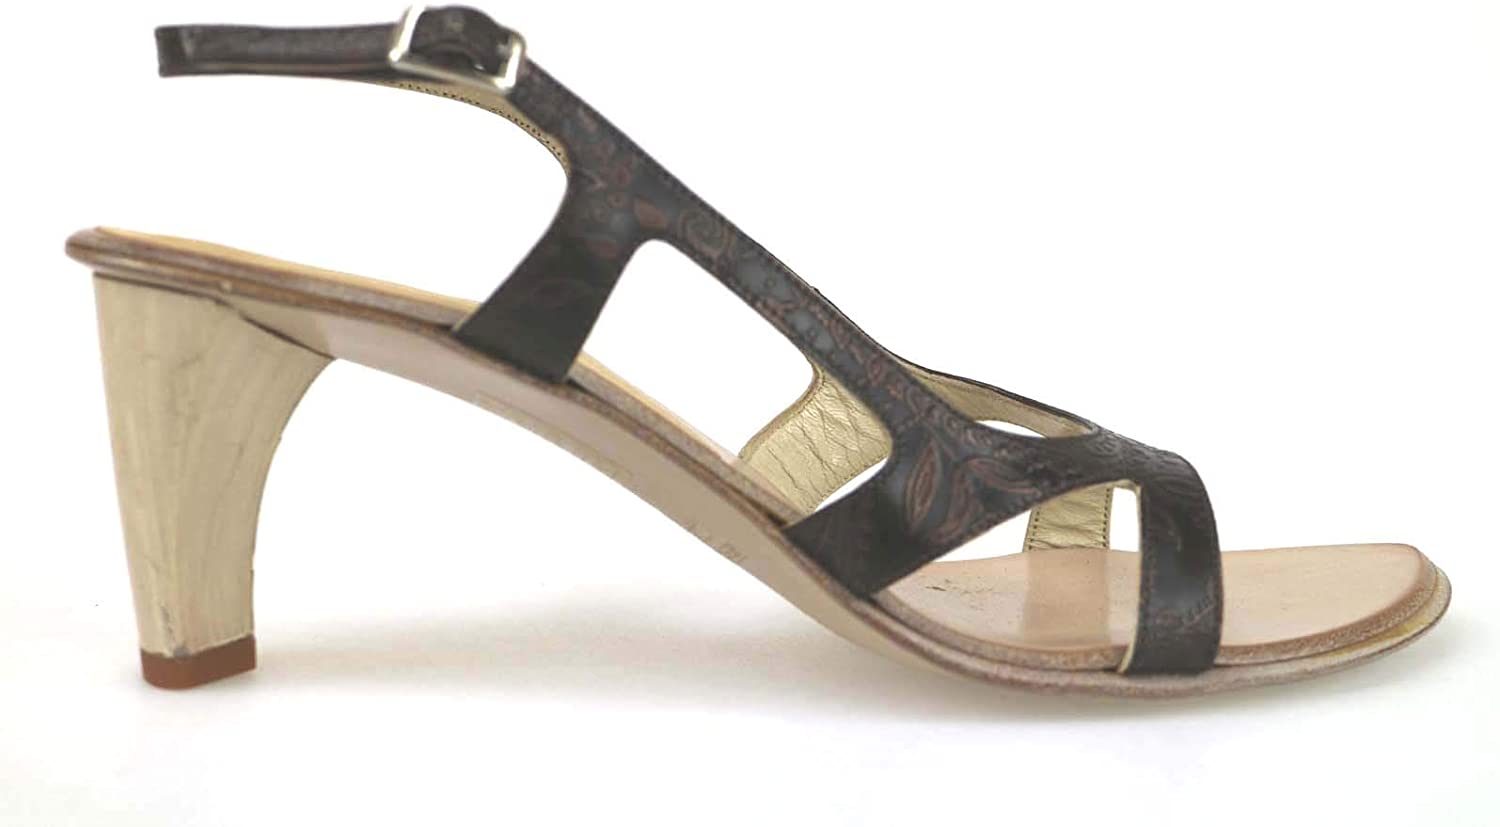 LATITUDE FEMME Pumps-shoes Womens Leather Brown 8 US